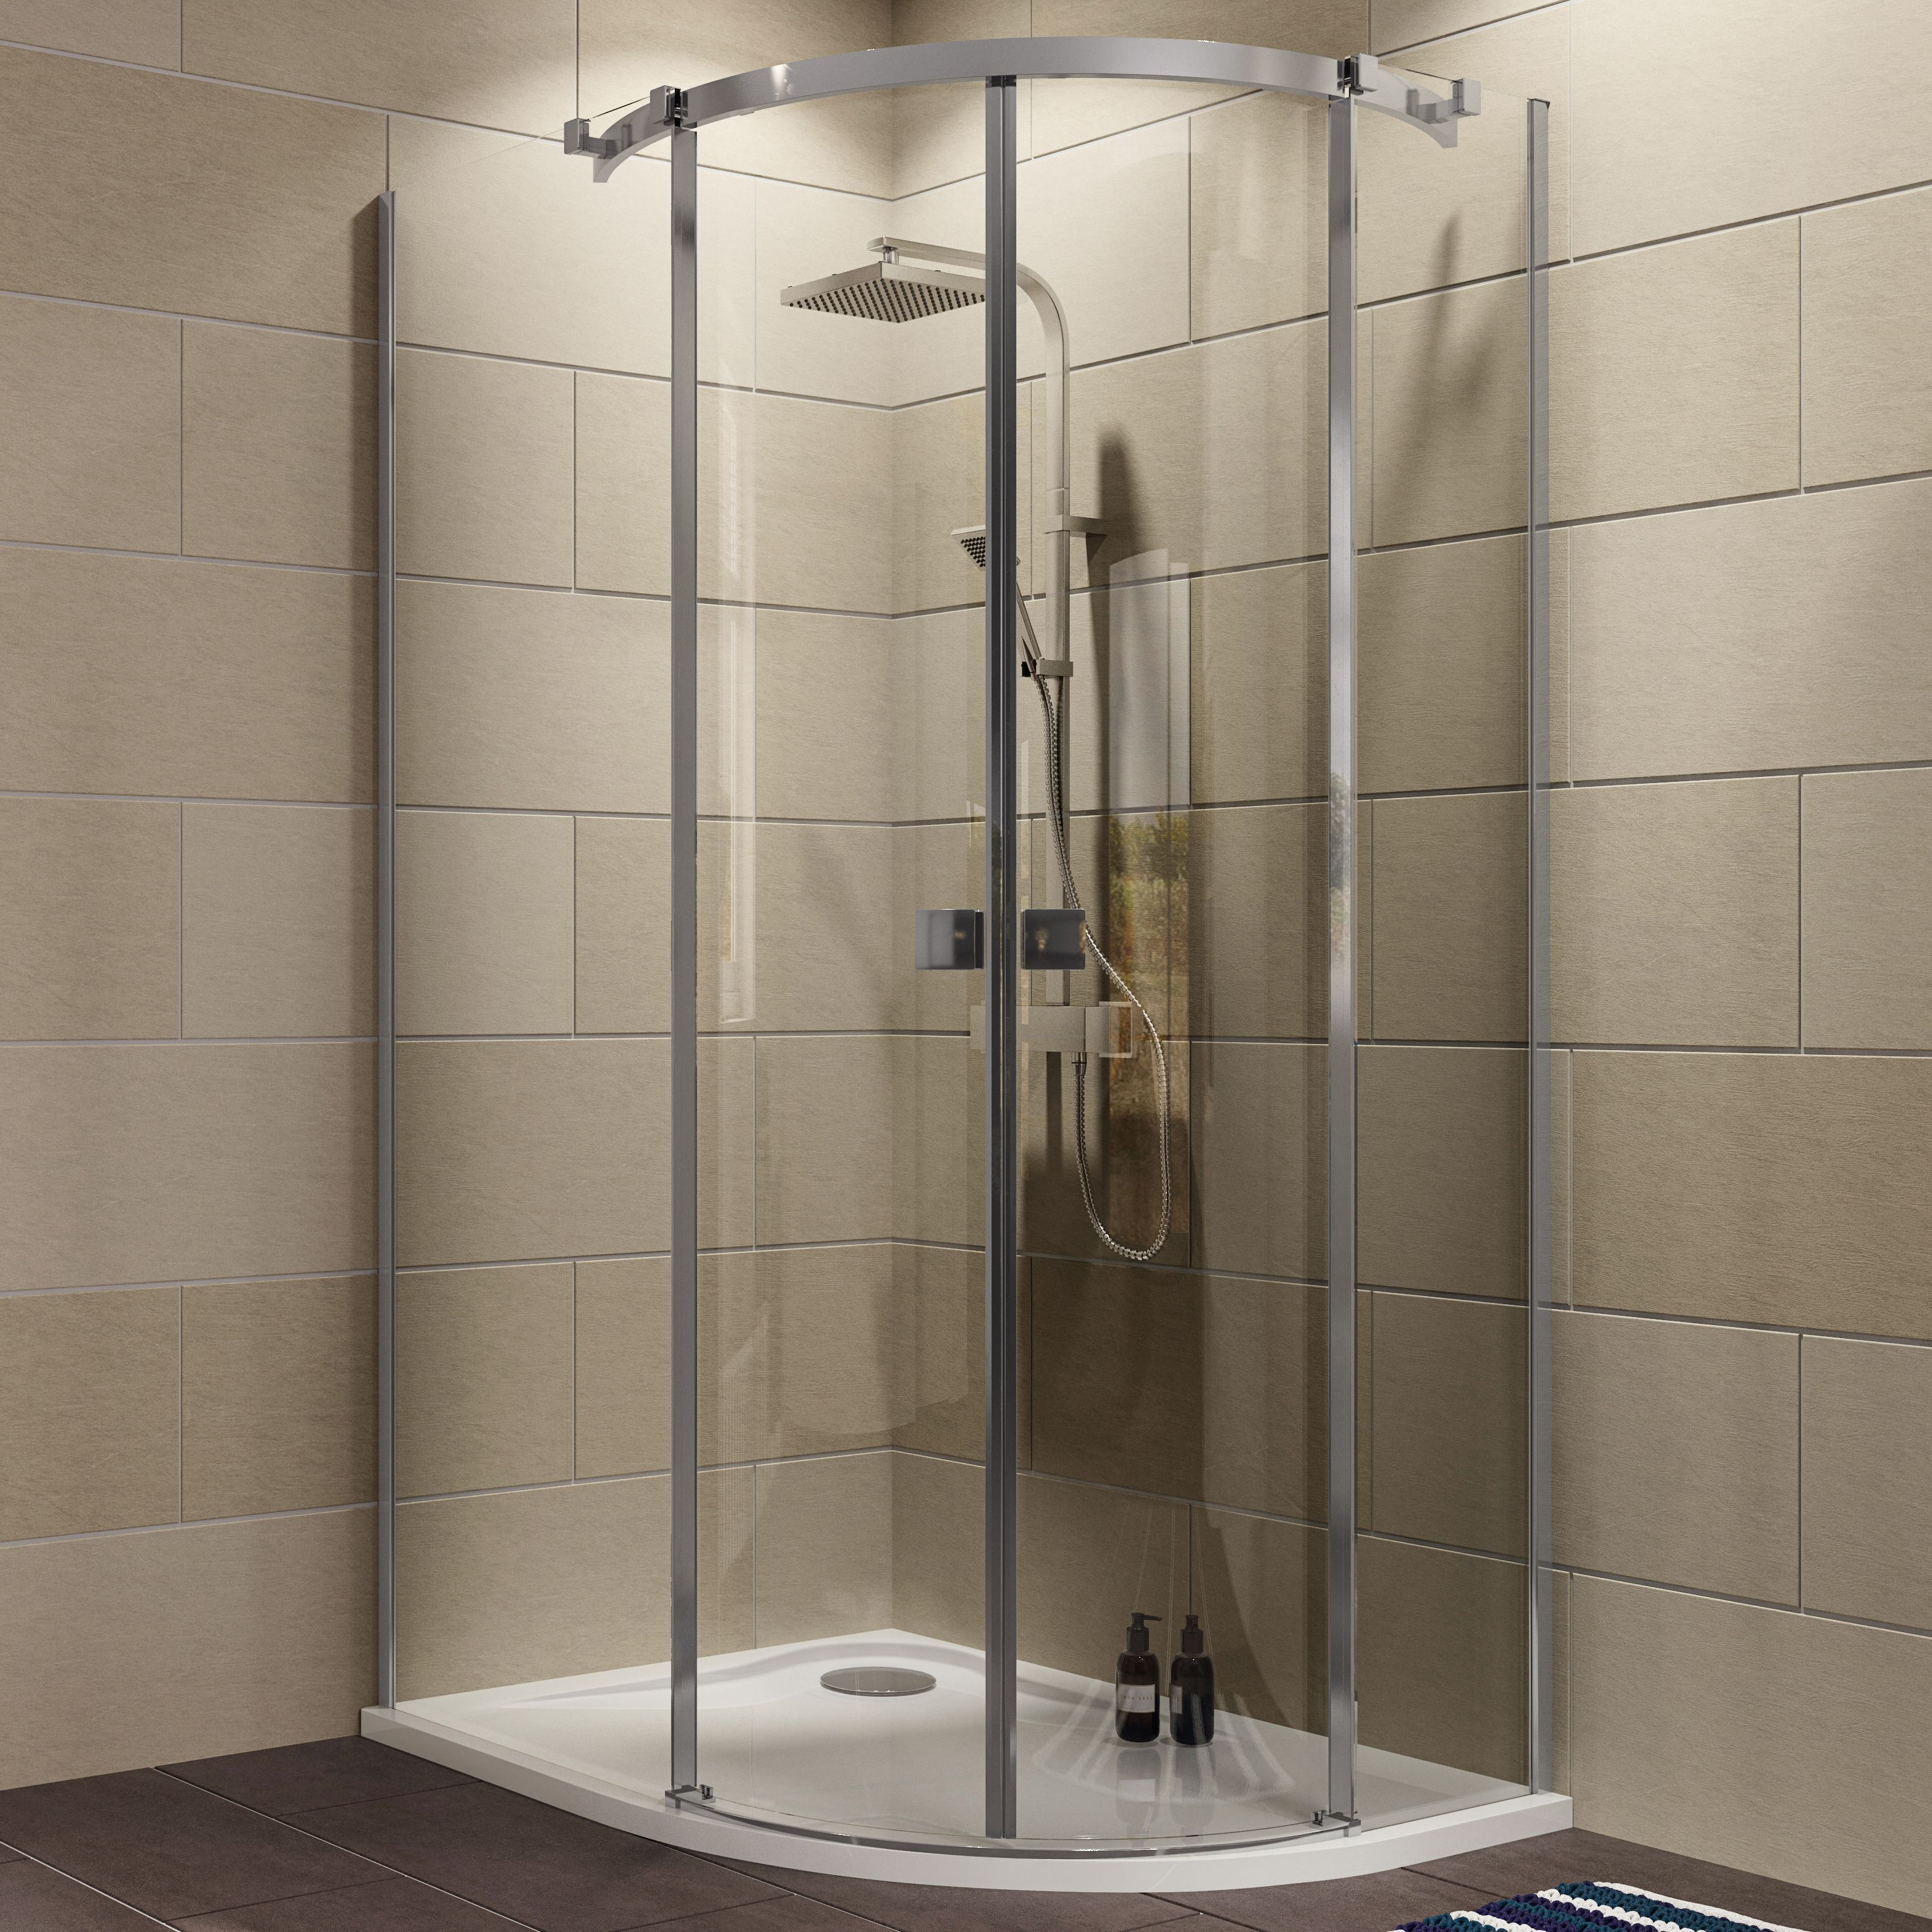 Double Shower Tray - Home Safe